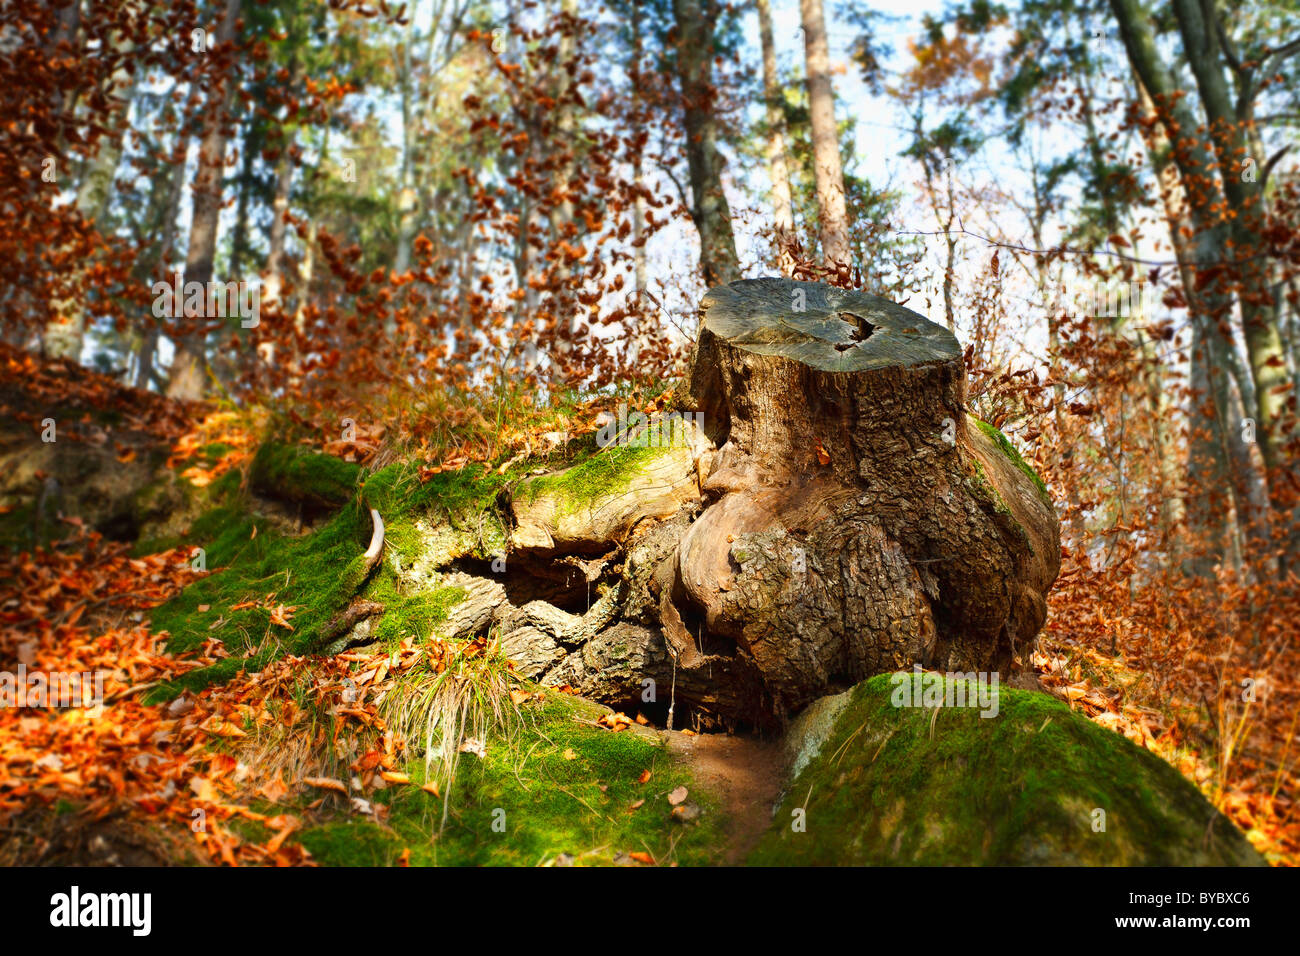 Big stump with moss in a beech forest - Stock Image